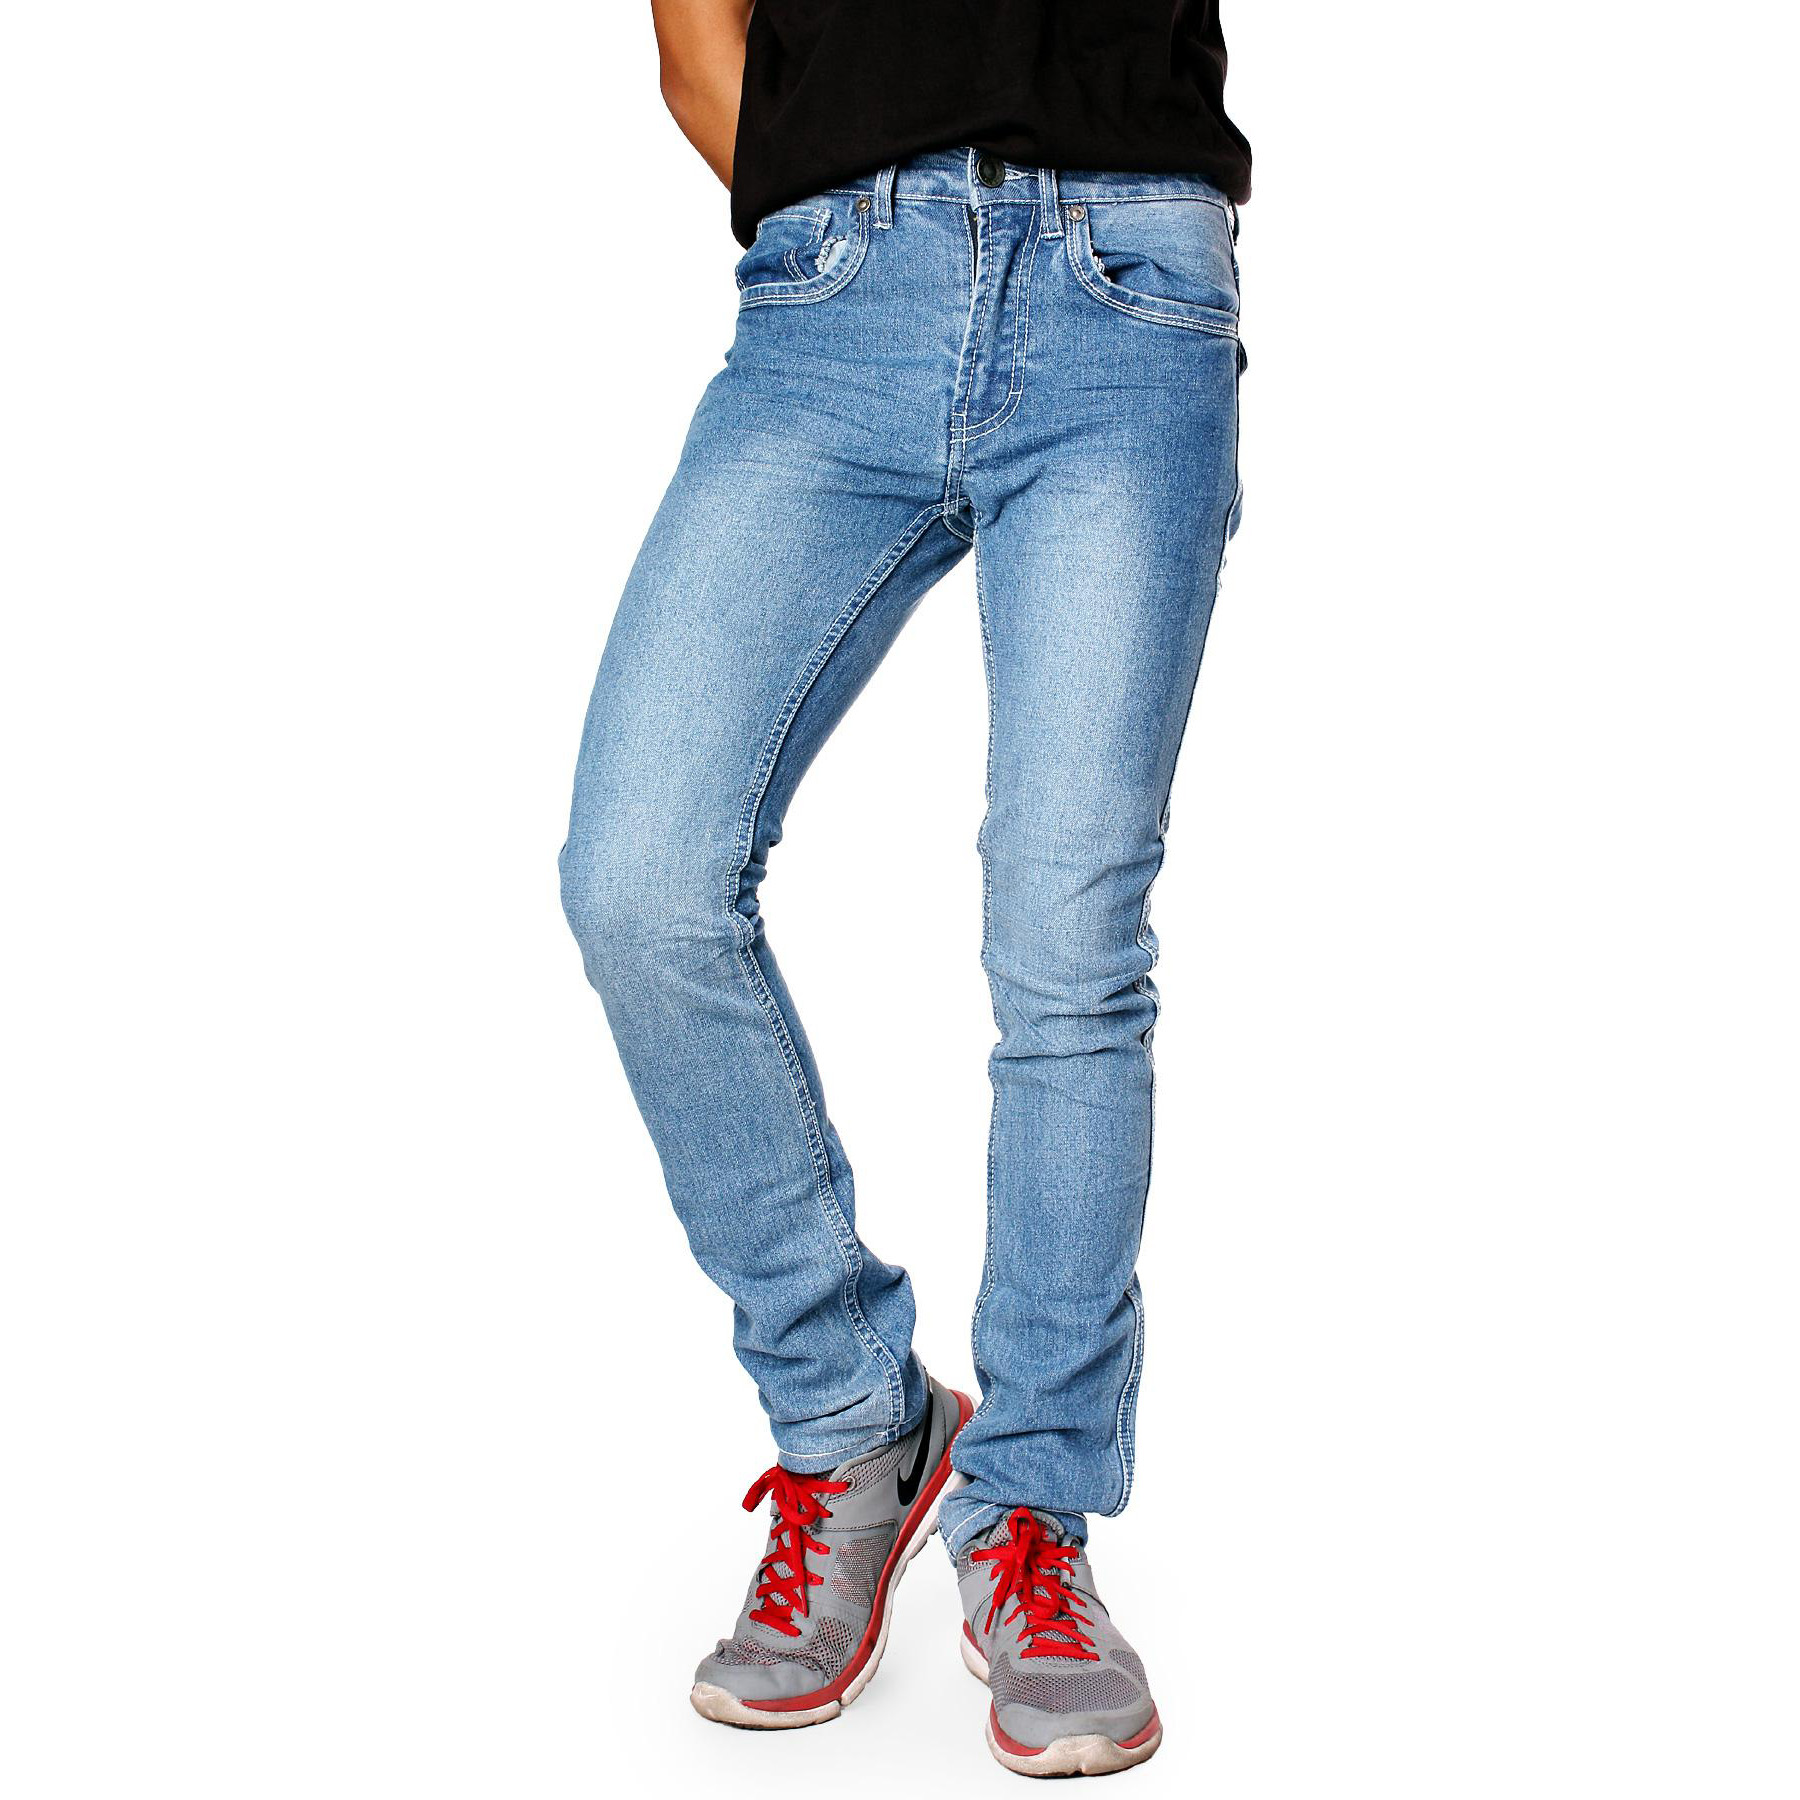 626 Denim Designer Fashion Mens Slim Fit Skinny Jeans Multiple Styles